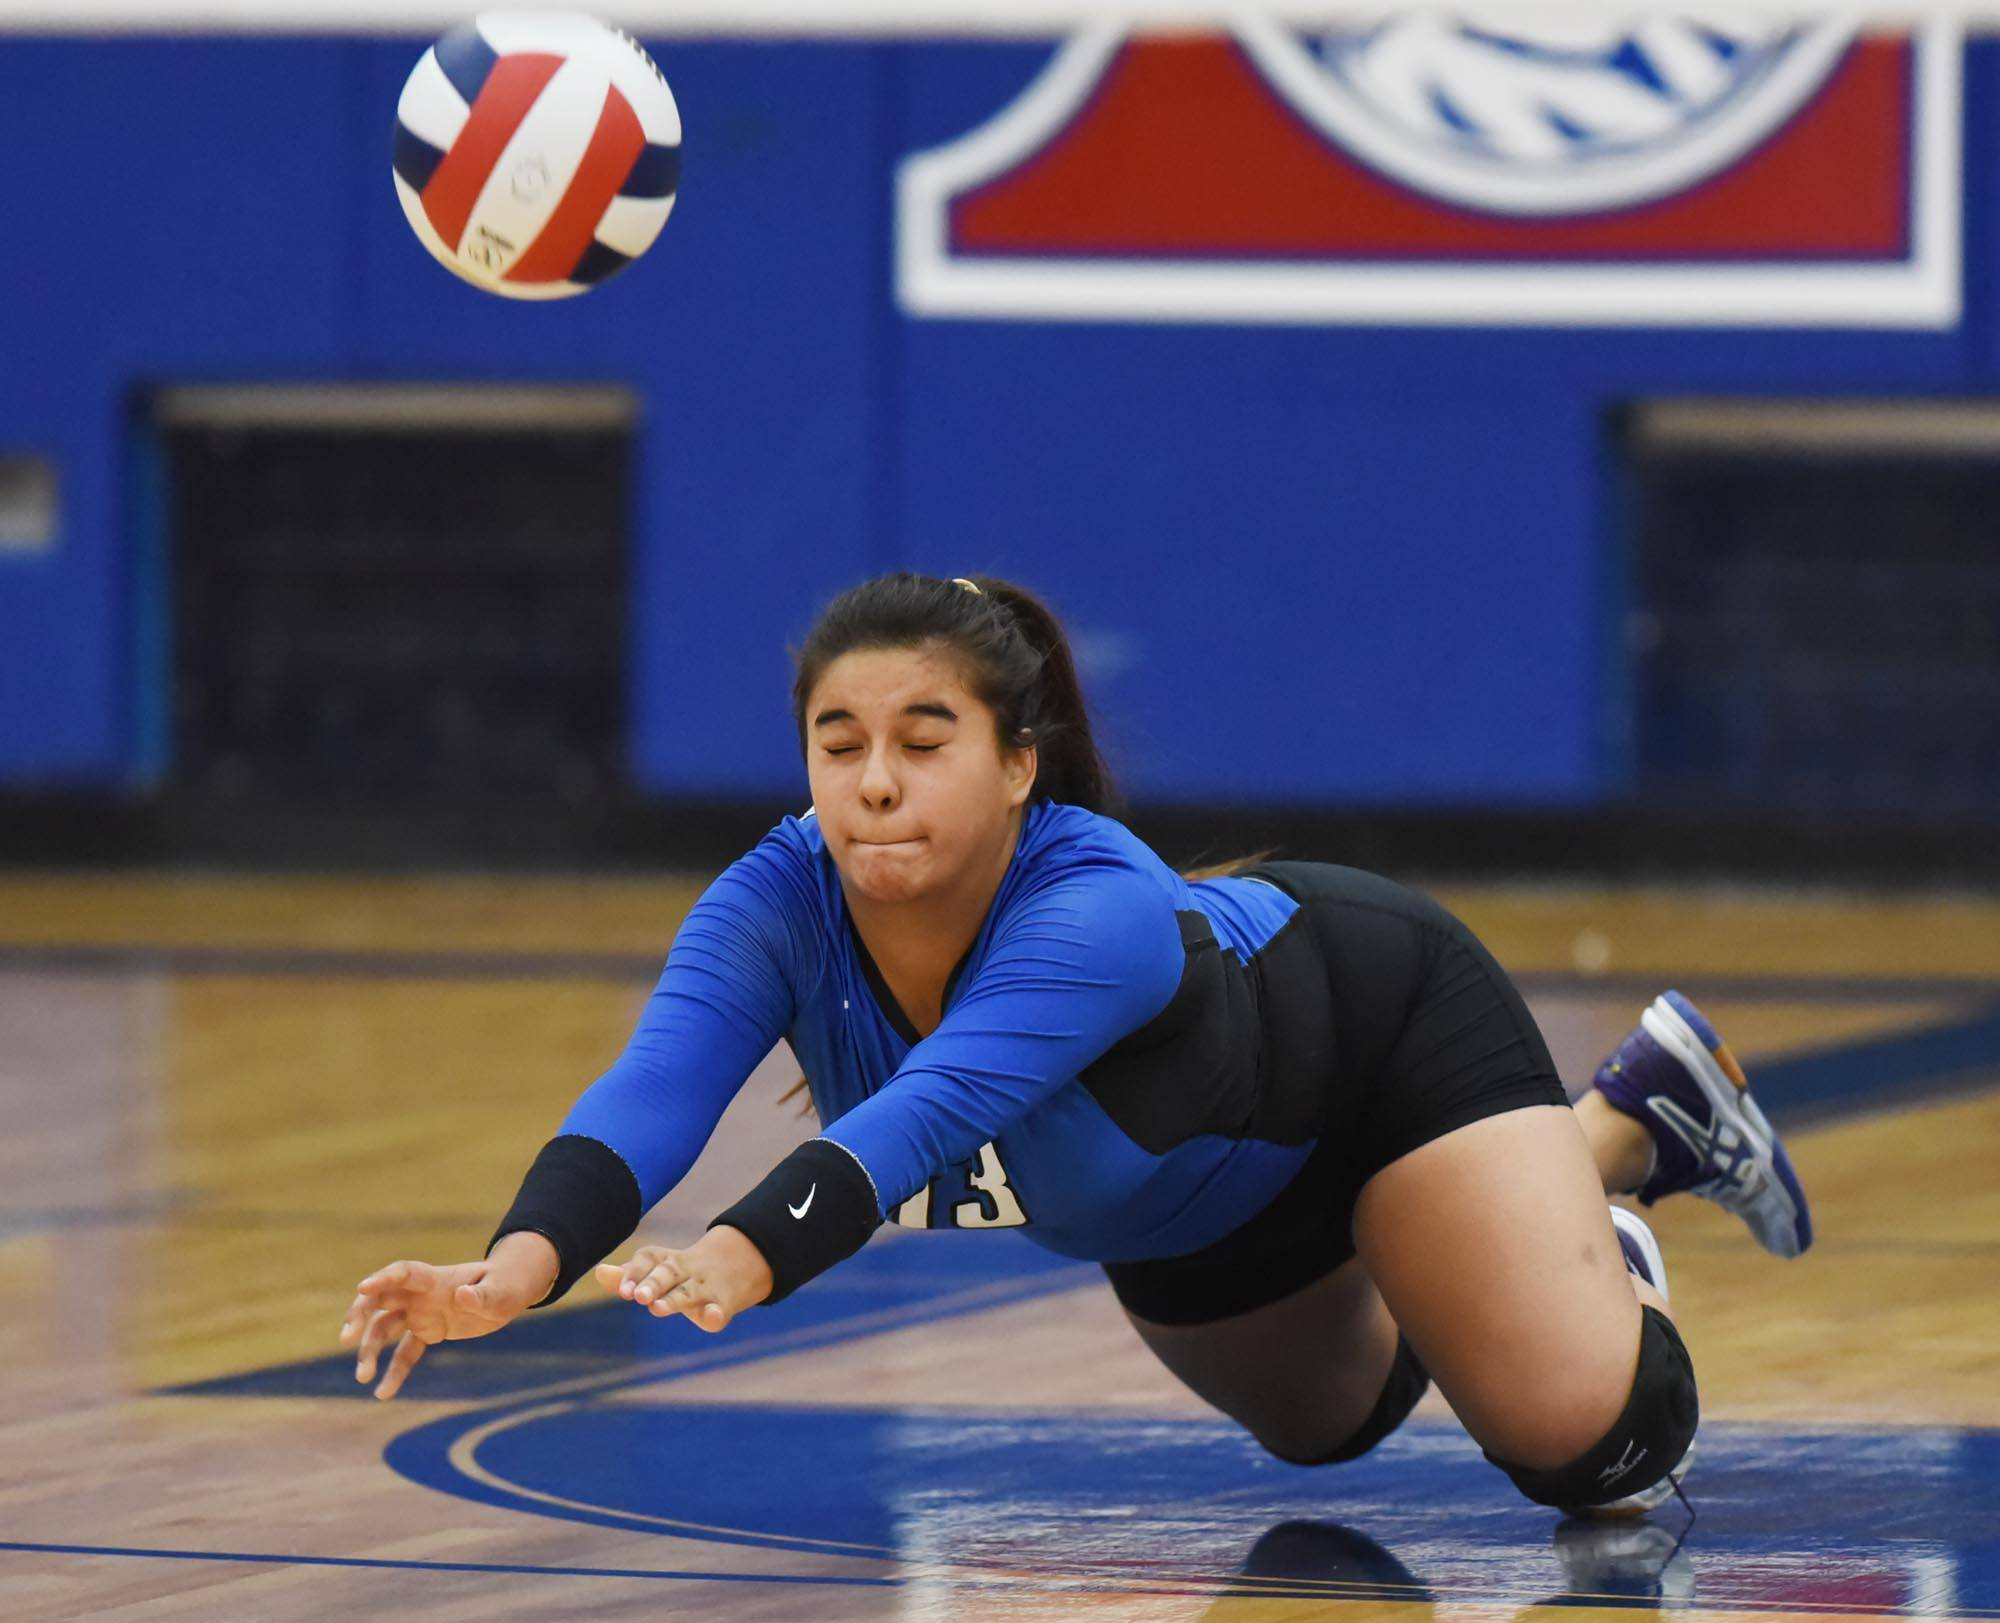 Larkin's Claribel Hernandez tries to dig an Elgin shot  Tuesday at Larkin High School in Elgin.